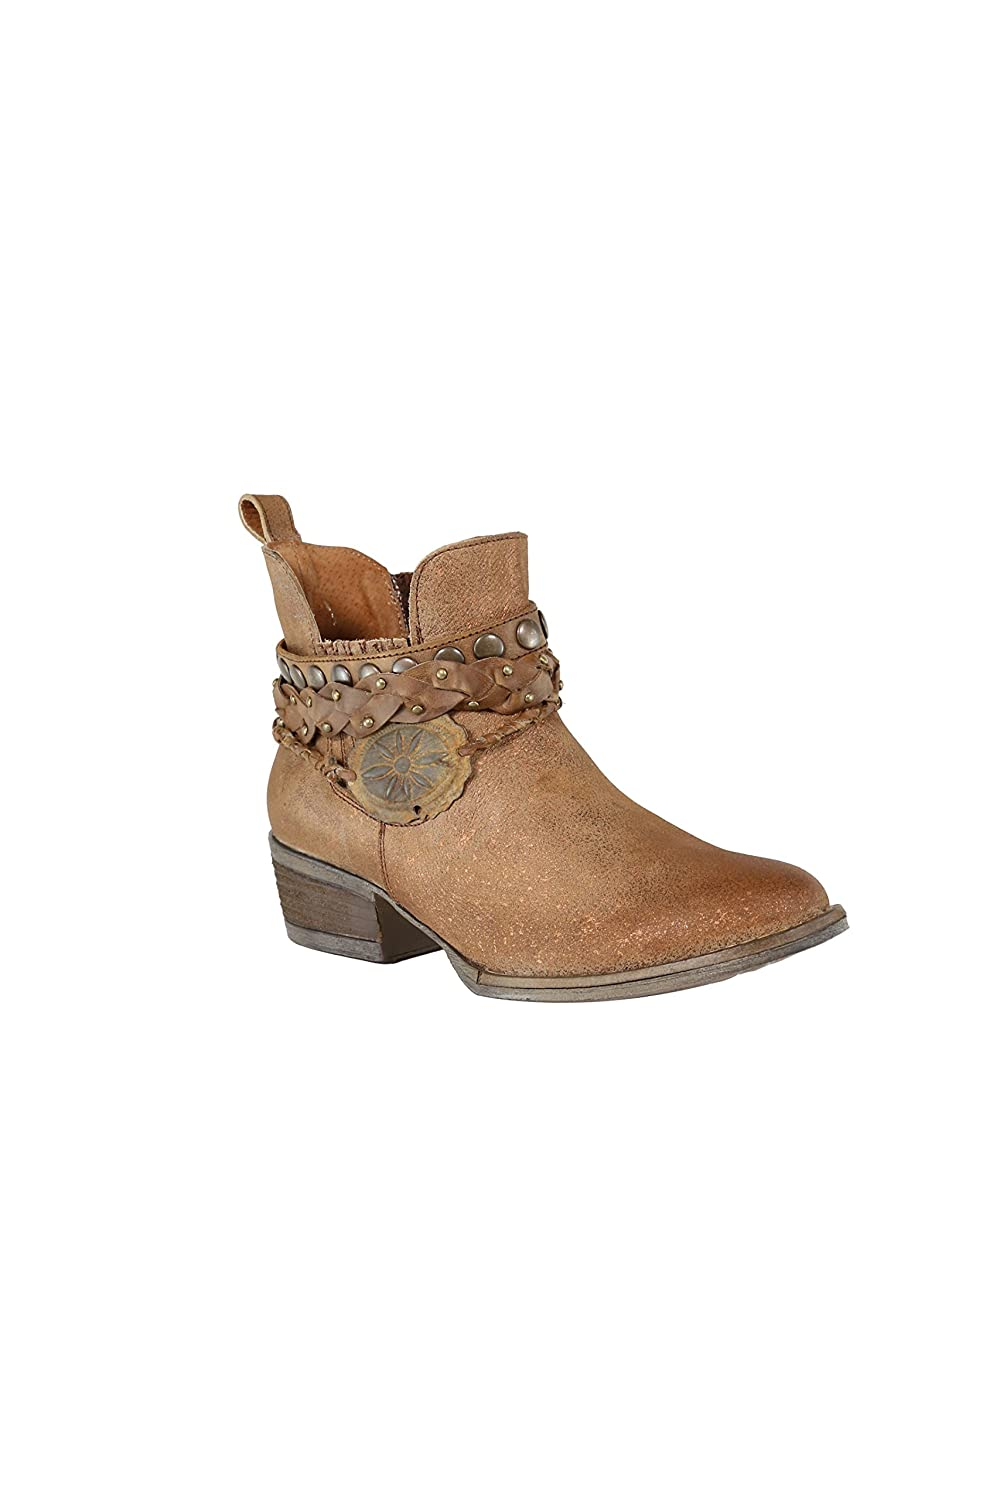 Corral Women's Brown Harness & Stud Details Round Toe Leather Western Ankle  Cowboy Boots - Sizes 5-12 B